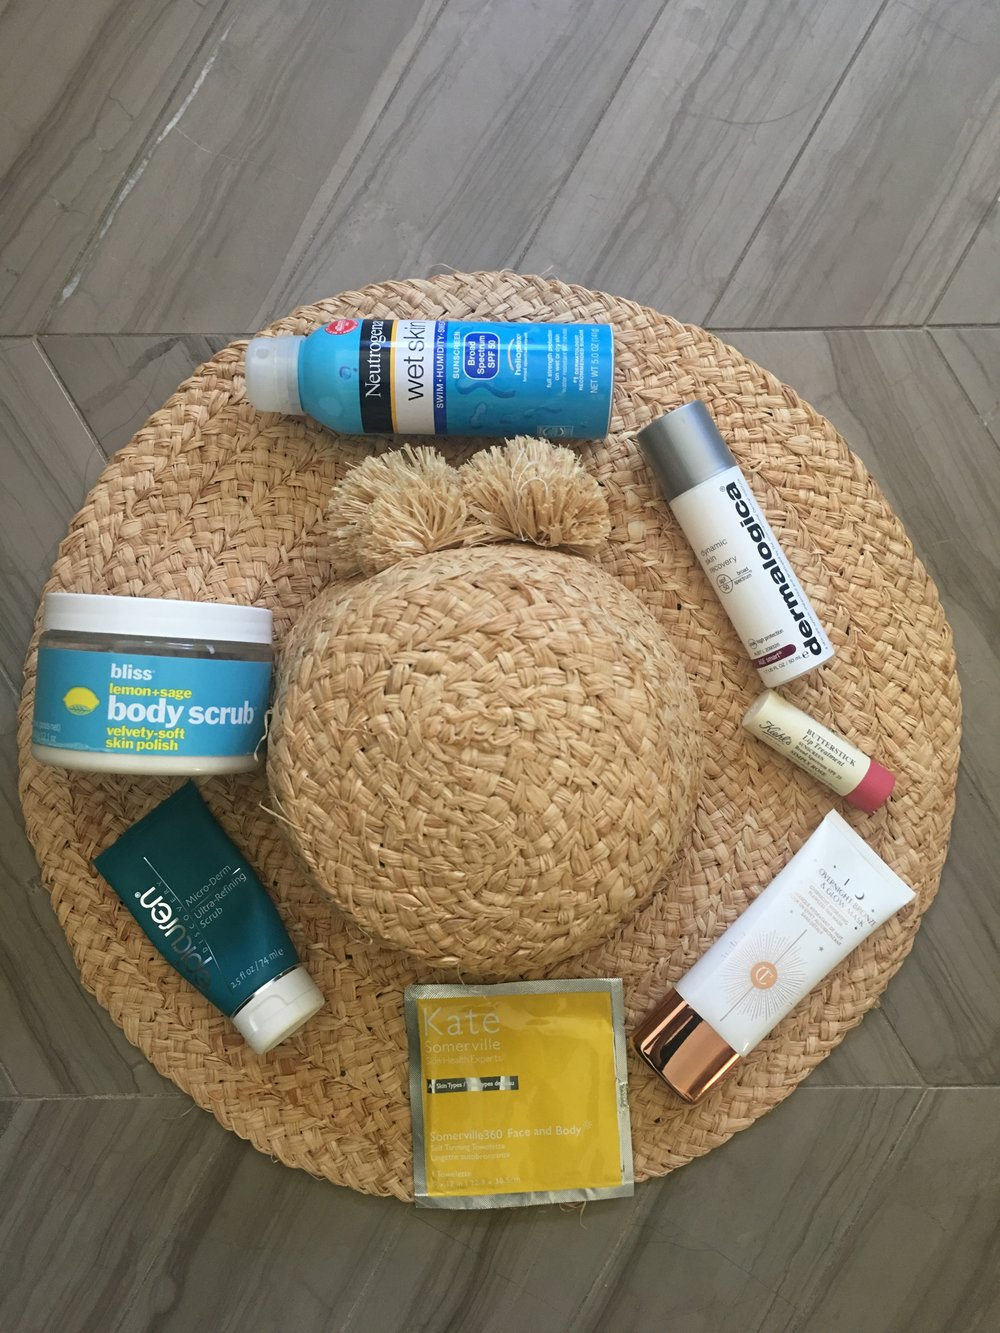 Kate Somerville Tan Towelettes   ,    Epicuren Micro Derm Scrub   ,    Bliss Body Scrub, similar here   ,    Neutrogena Wet Skin  Sunscreen   ,    Dermalogica Dynamic Skin Recovery SPF 50   ,    Kiehl's Butterstick Lip Treatment SPF 25   ,    Charlotte Tilbury Overnight Bronze and Glow Mask   .